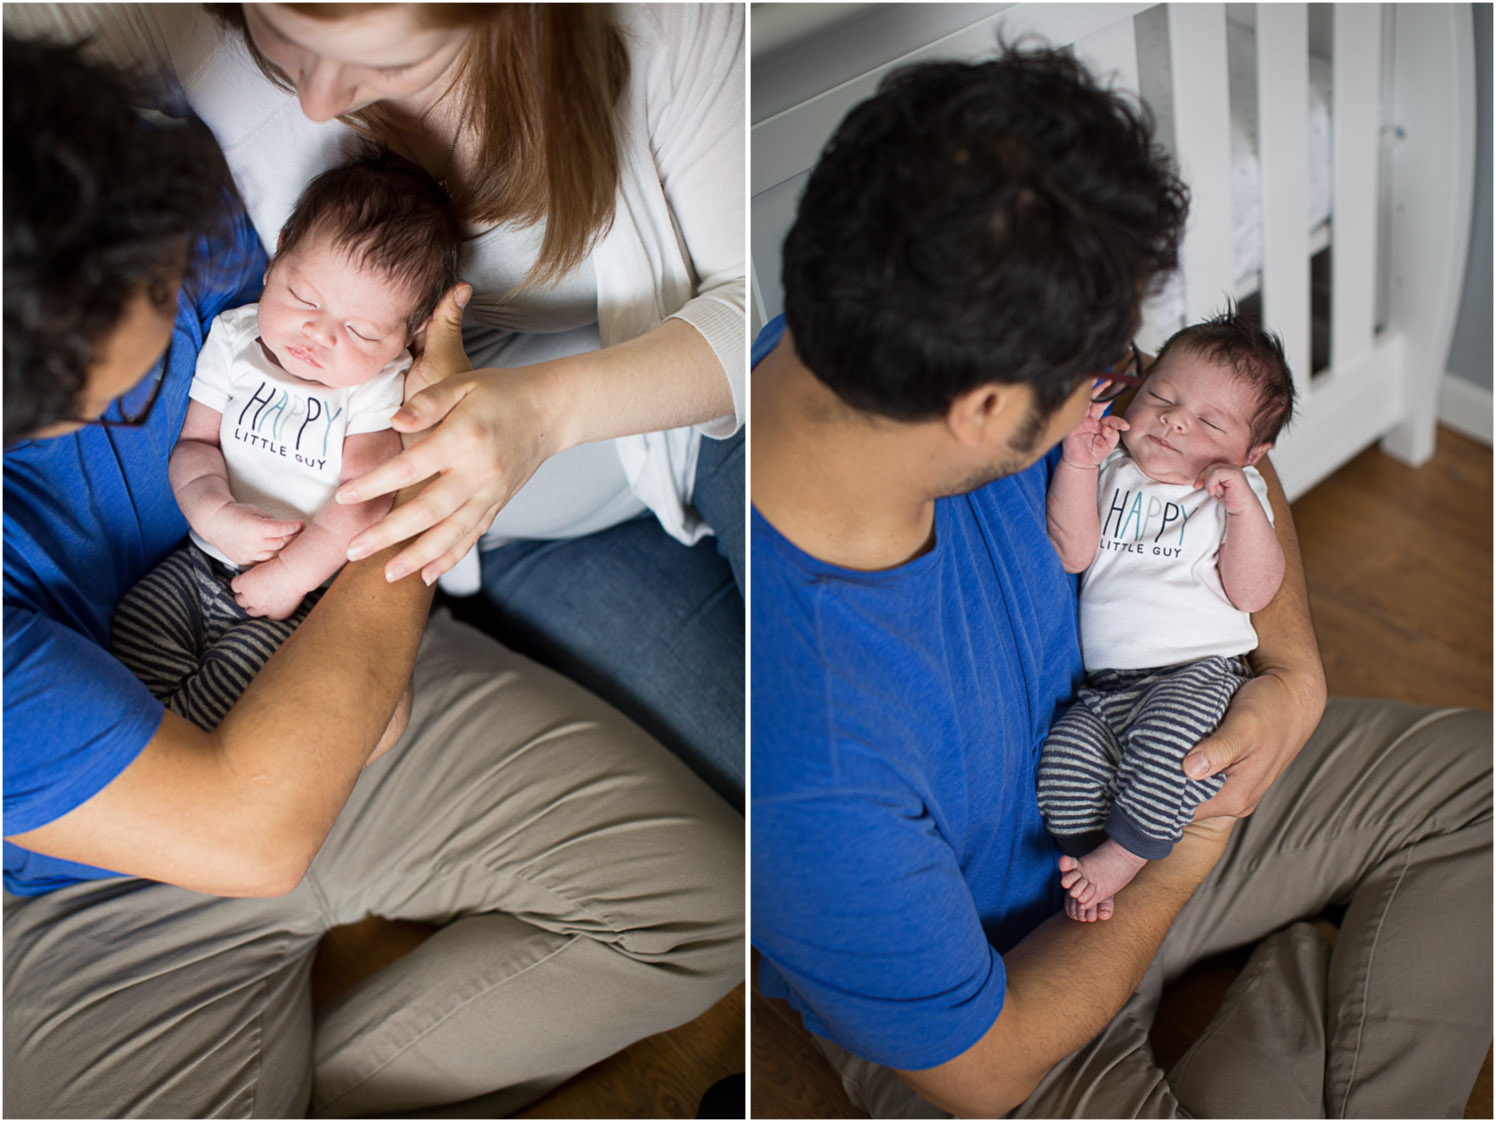 08-in-home-newborn-baby-boy-lifestyle-nursery-new-parents-mother-mom-father-son-happy-family-minnesota-photographer-mahonen-photography.jpg